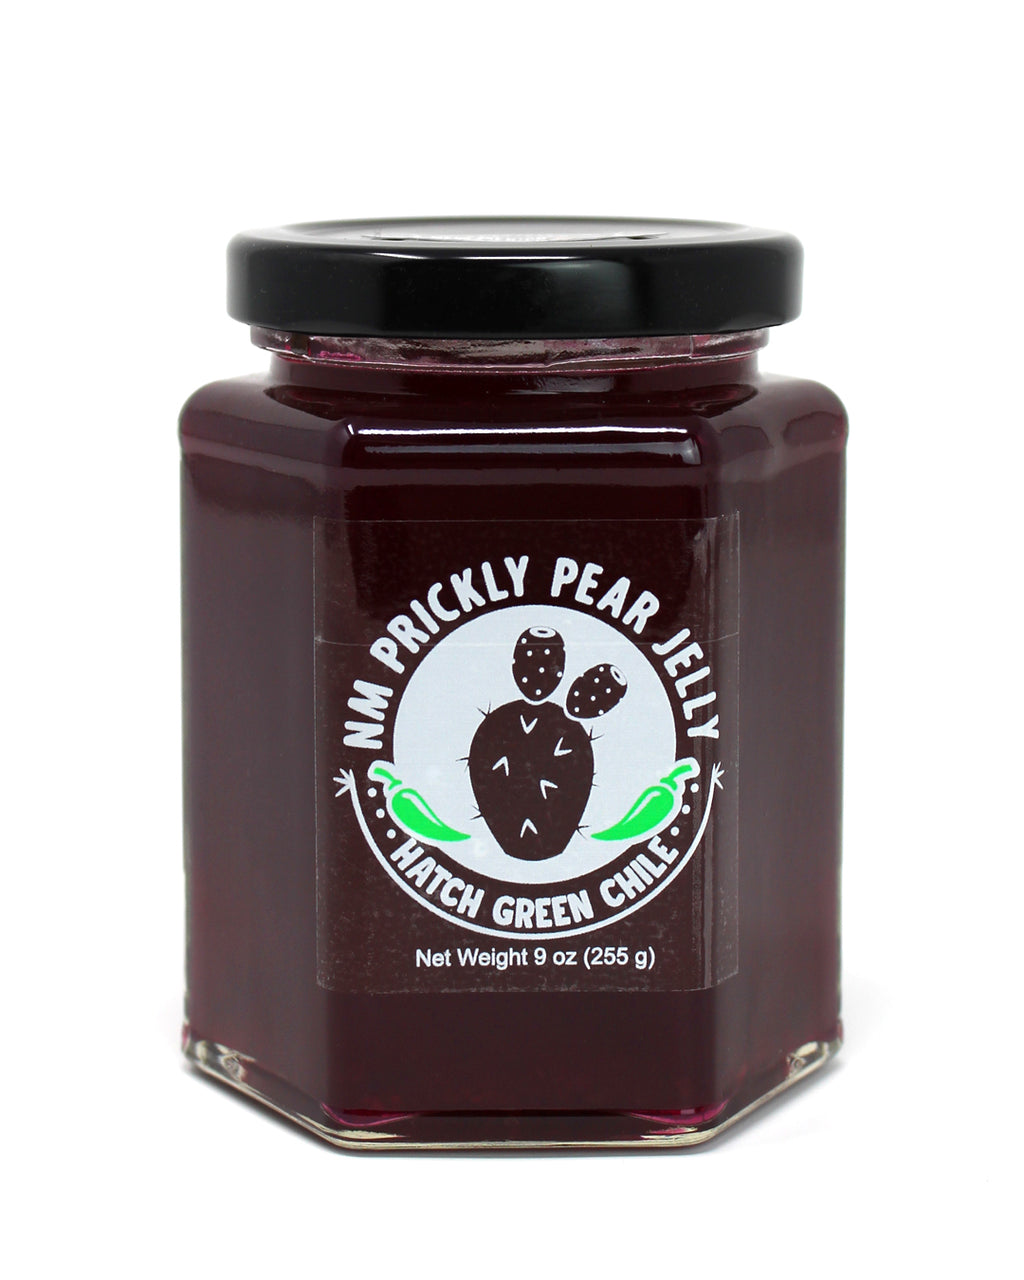 Prickly Pear & Green Chile Jelly